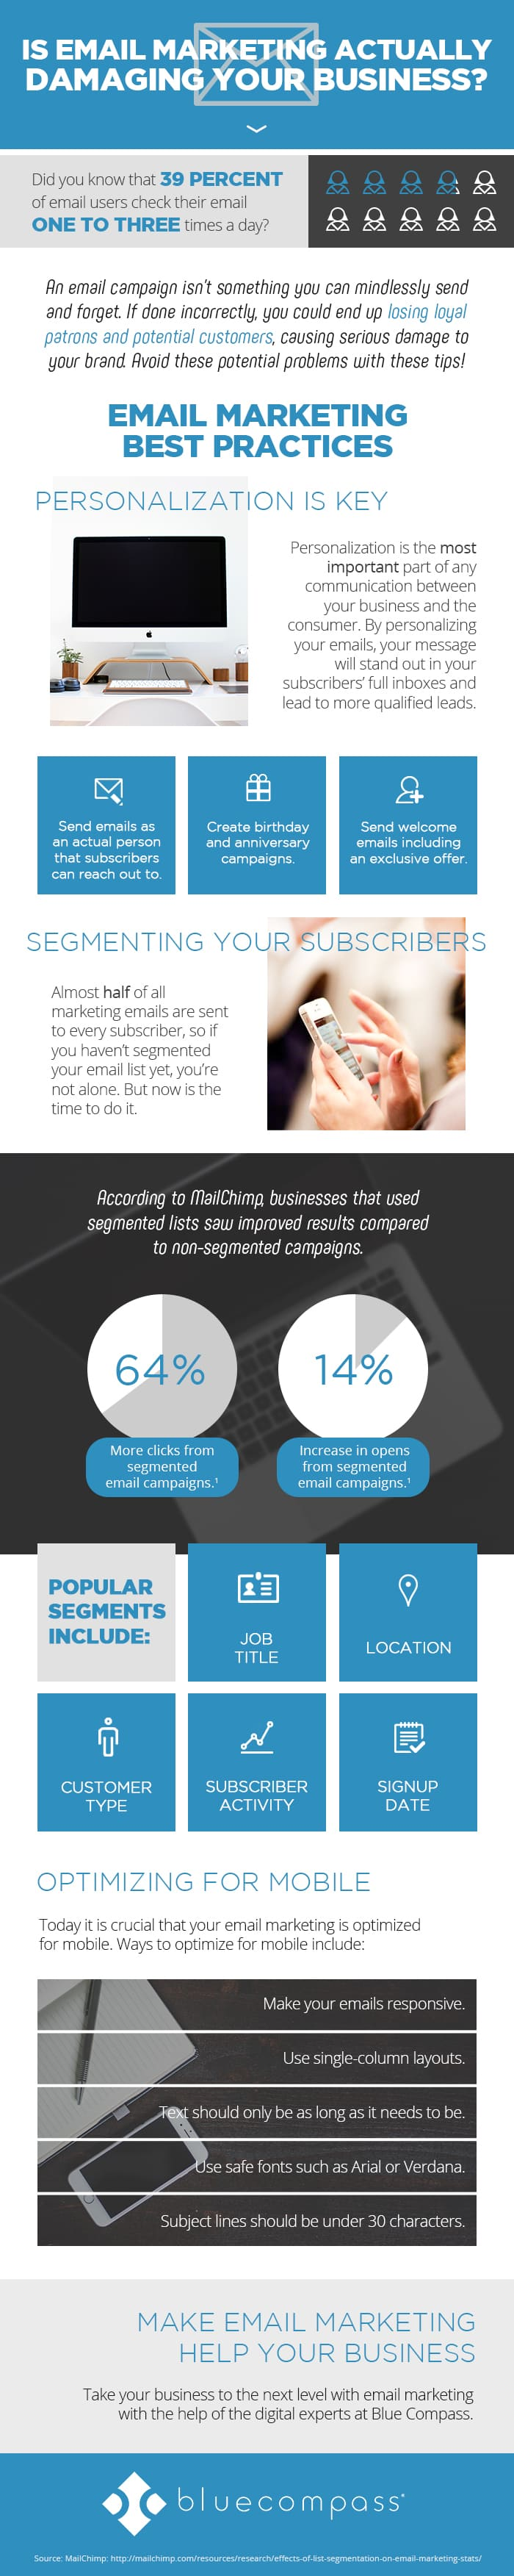 Is email Marketing actually hurting your Business